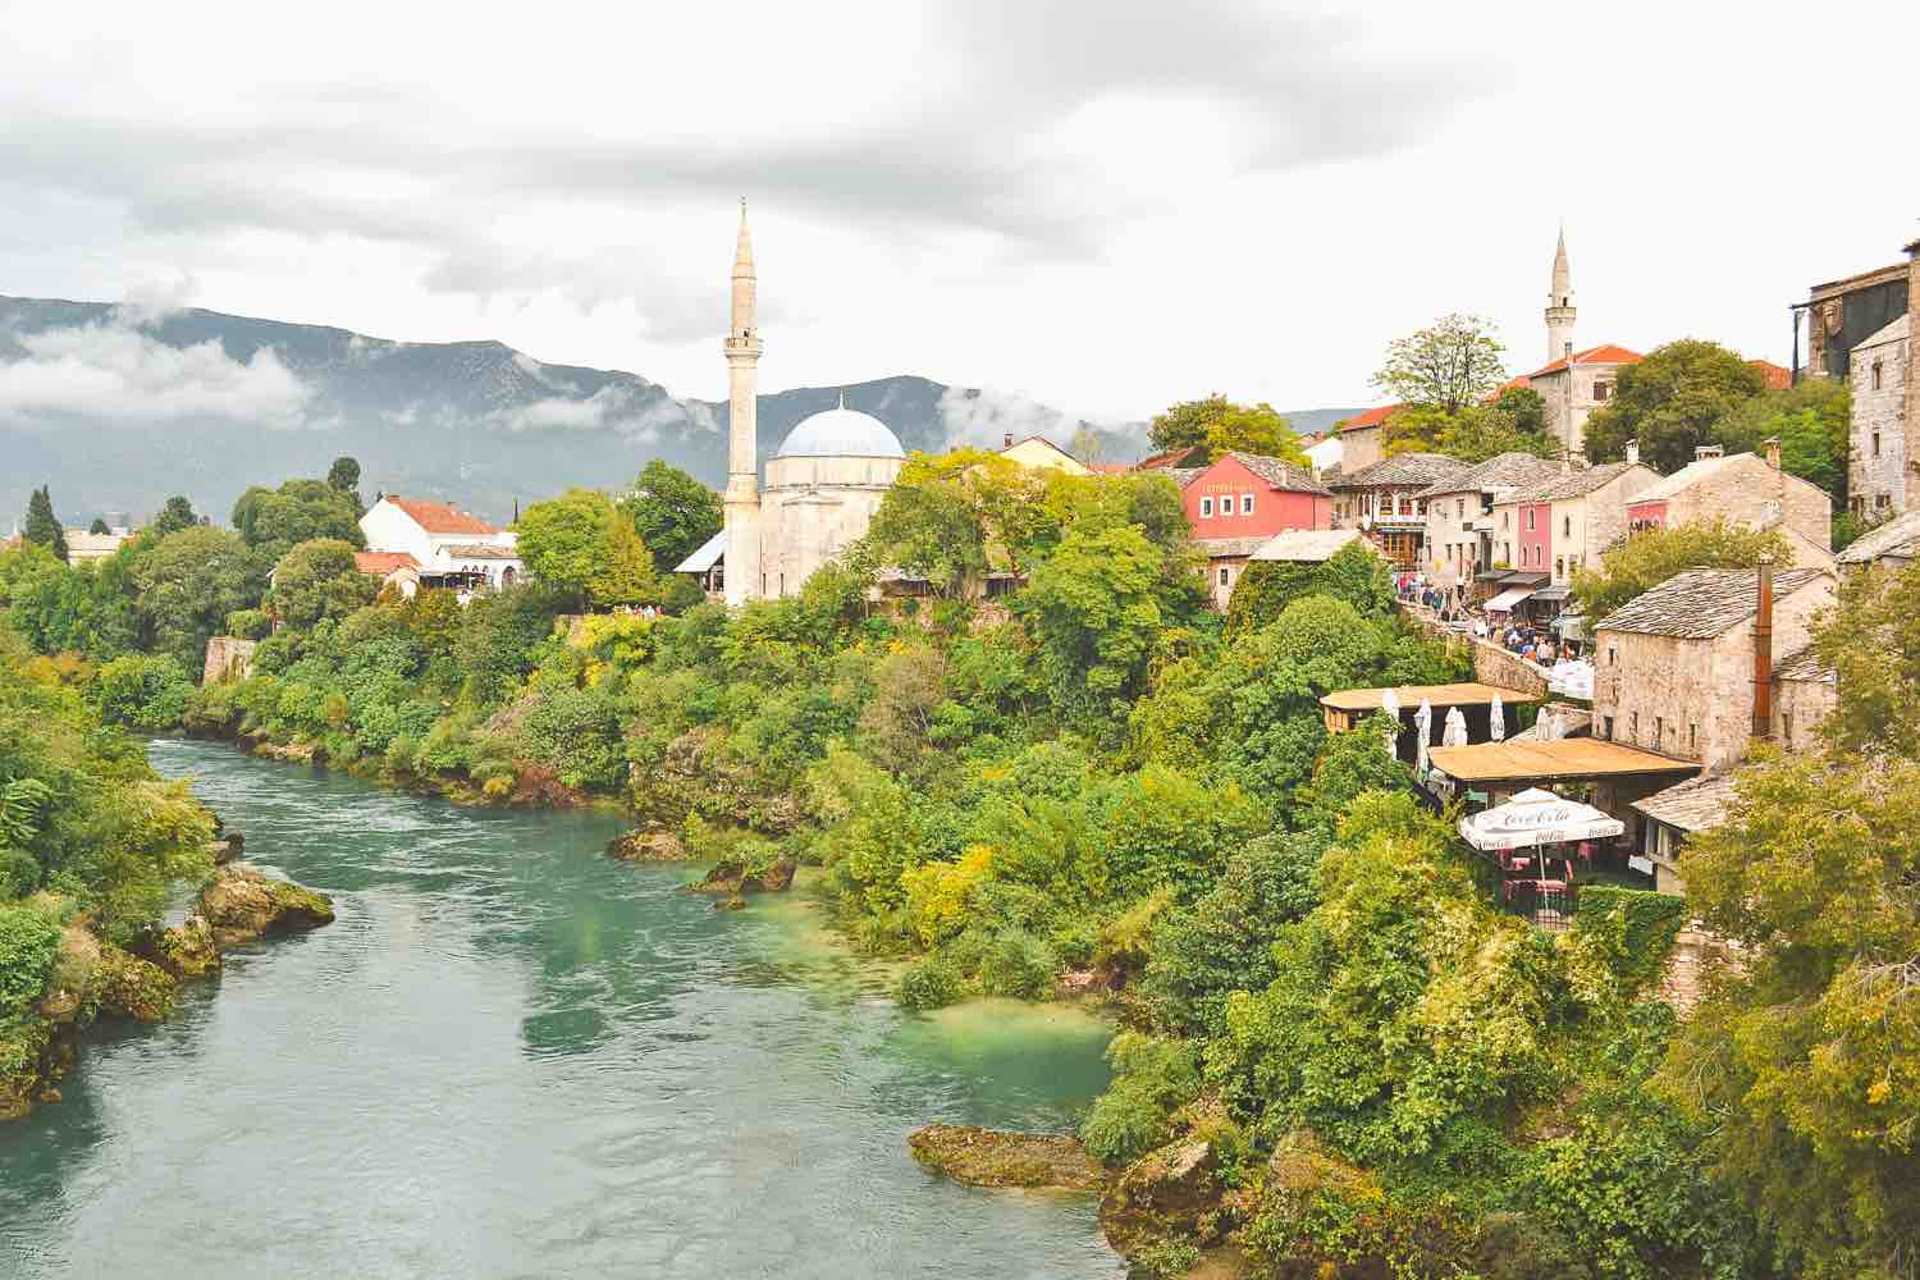 Another view from Stari Most